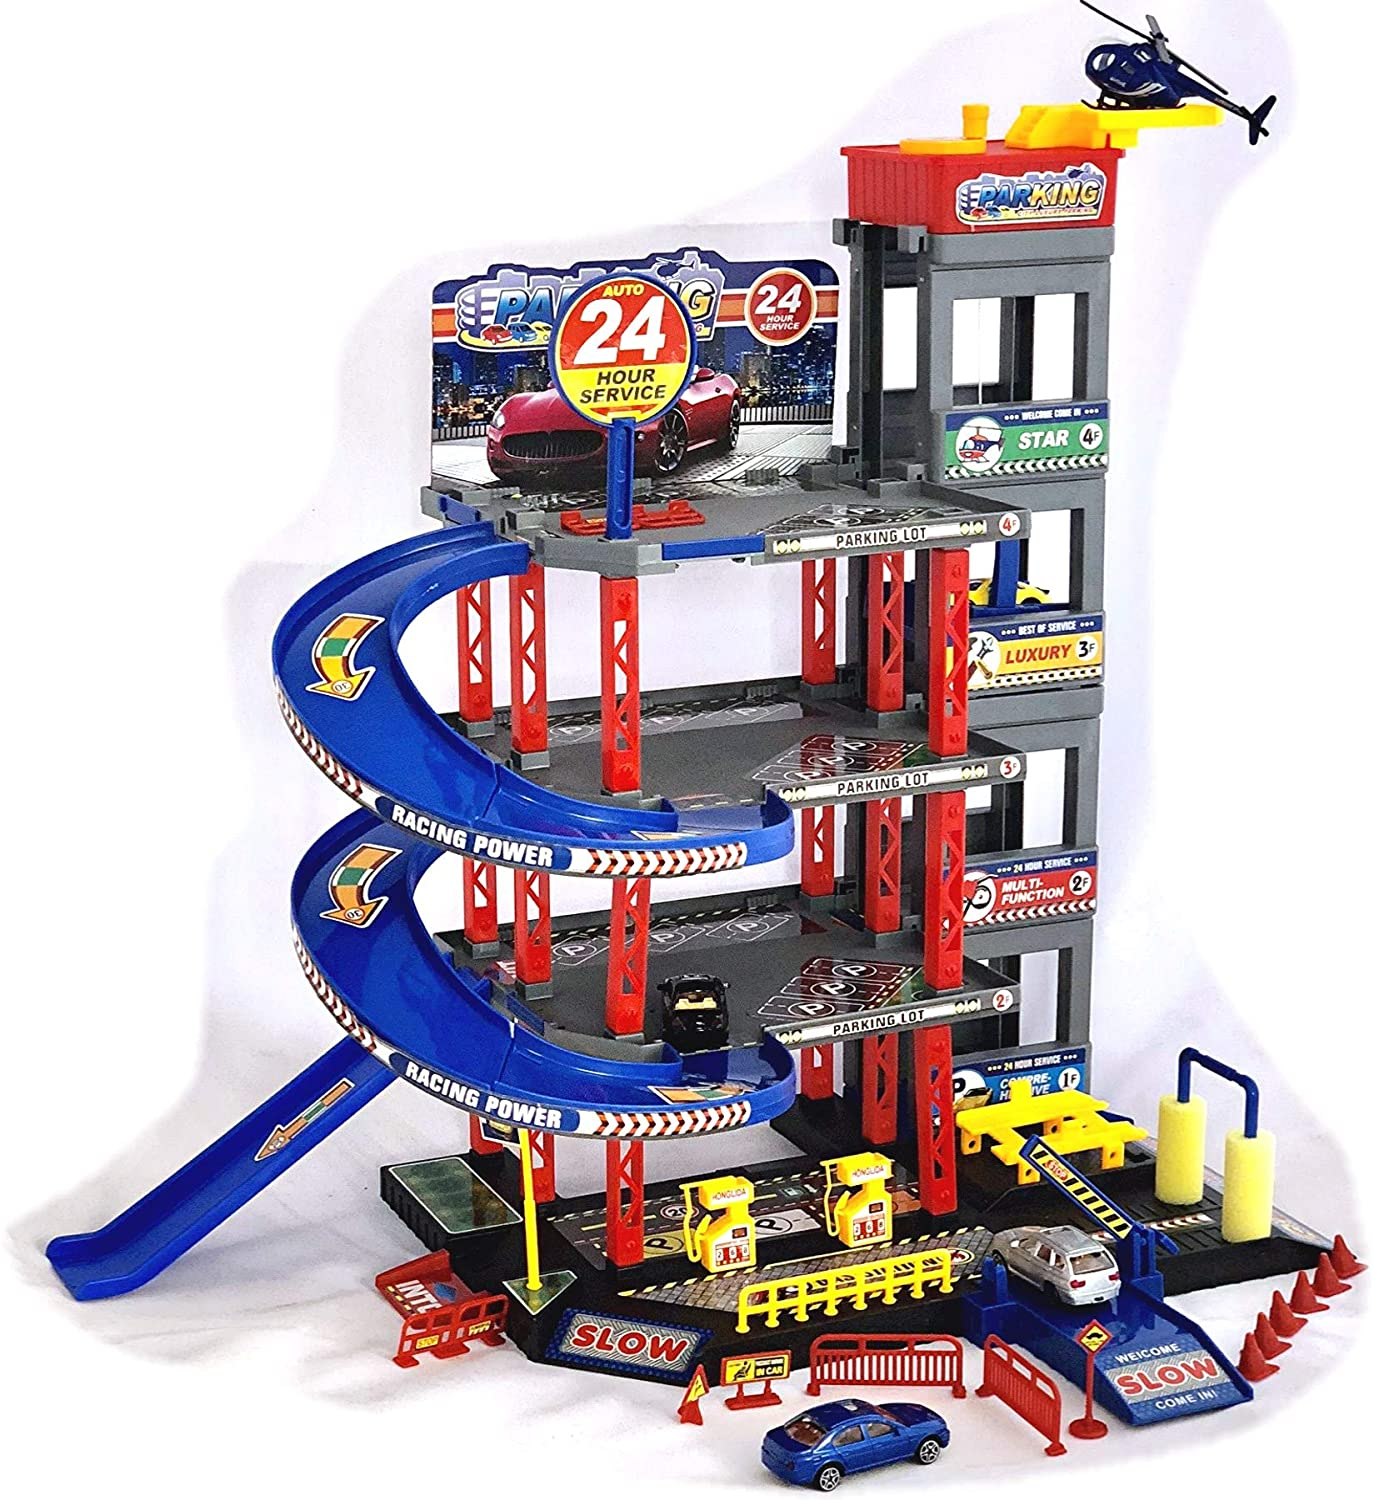 Children's Car Garage Garage with 4 Toy Cars and Helicopter Play Set with Petrol Station, Lift, Car Wash and Workshop